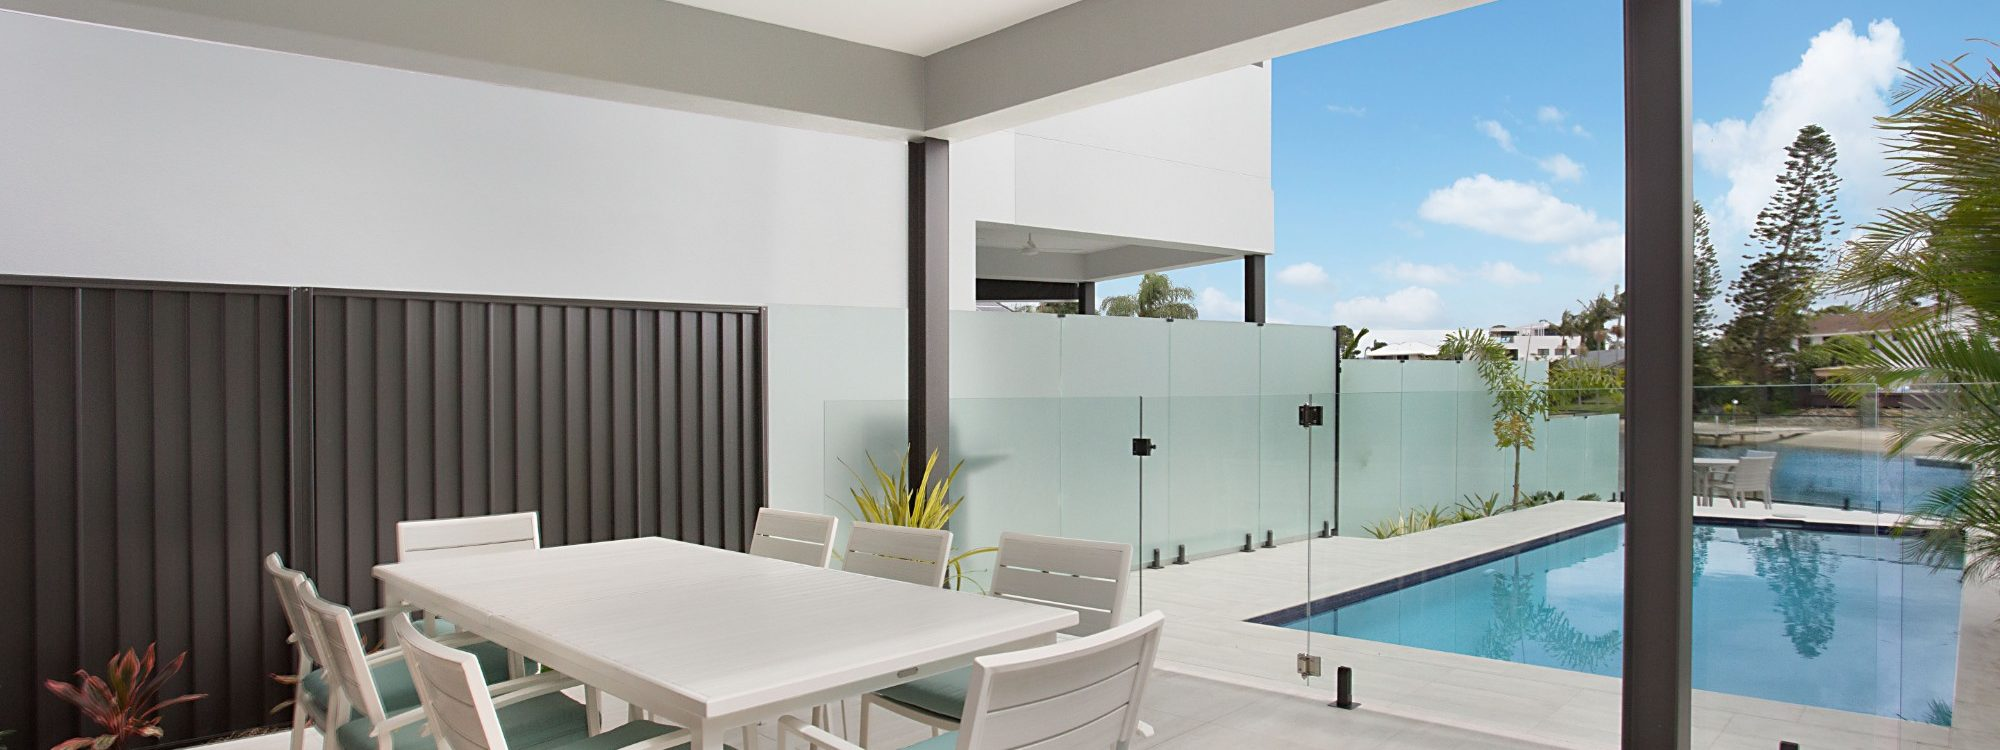 Bay Breeze - Broadbeach waters - Gold Coast - Outdoor entertainment and pool